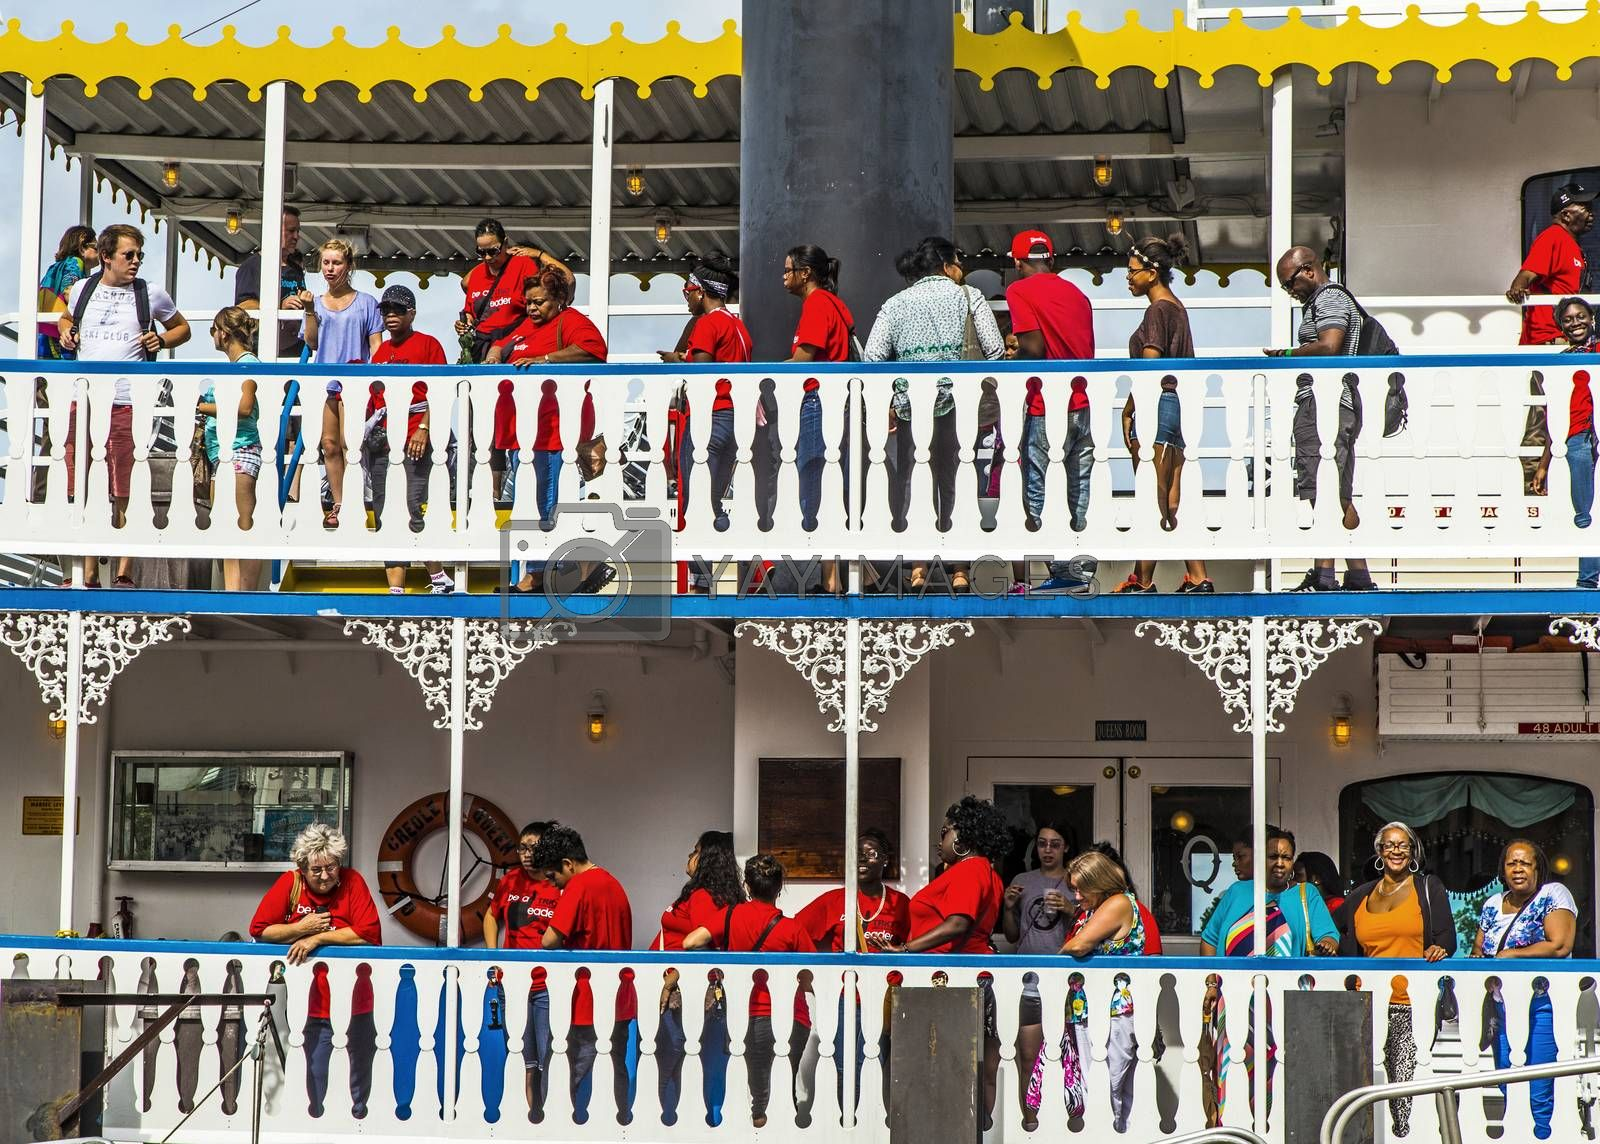 NEW ORLEANS - JULY 16, 2013: people at the creole Queen steam boat in New Orleans, USA. Constructed in Moss Point, Mississippi, the Creole Queen took her maiden voyage on October 1, 1983.